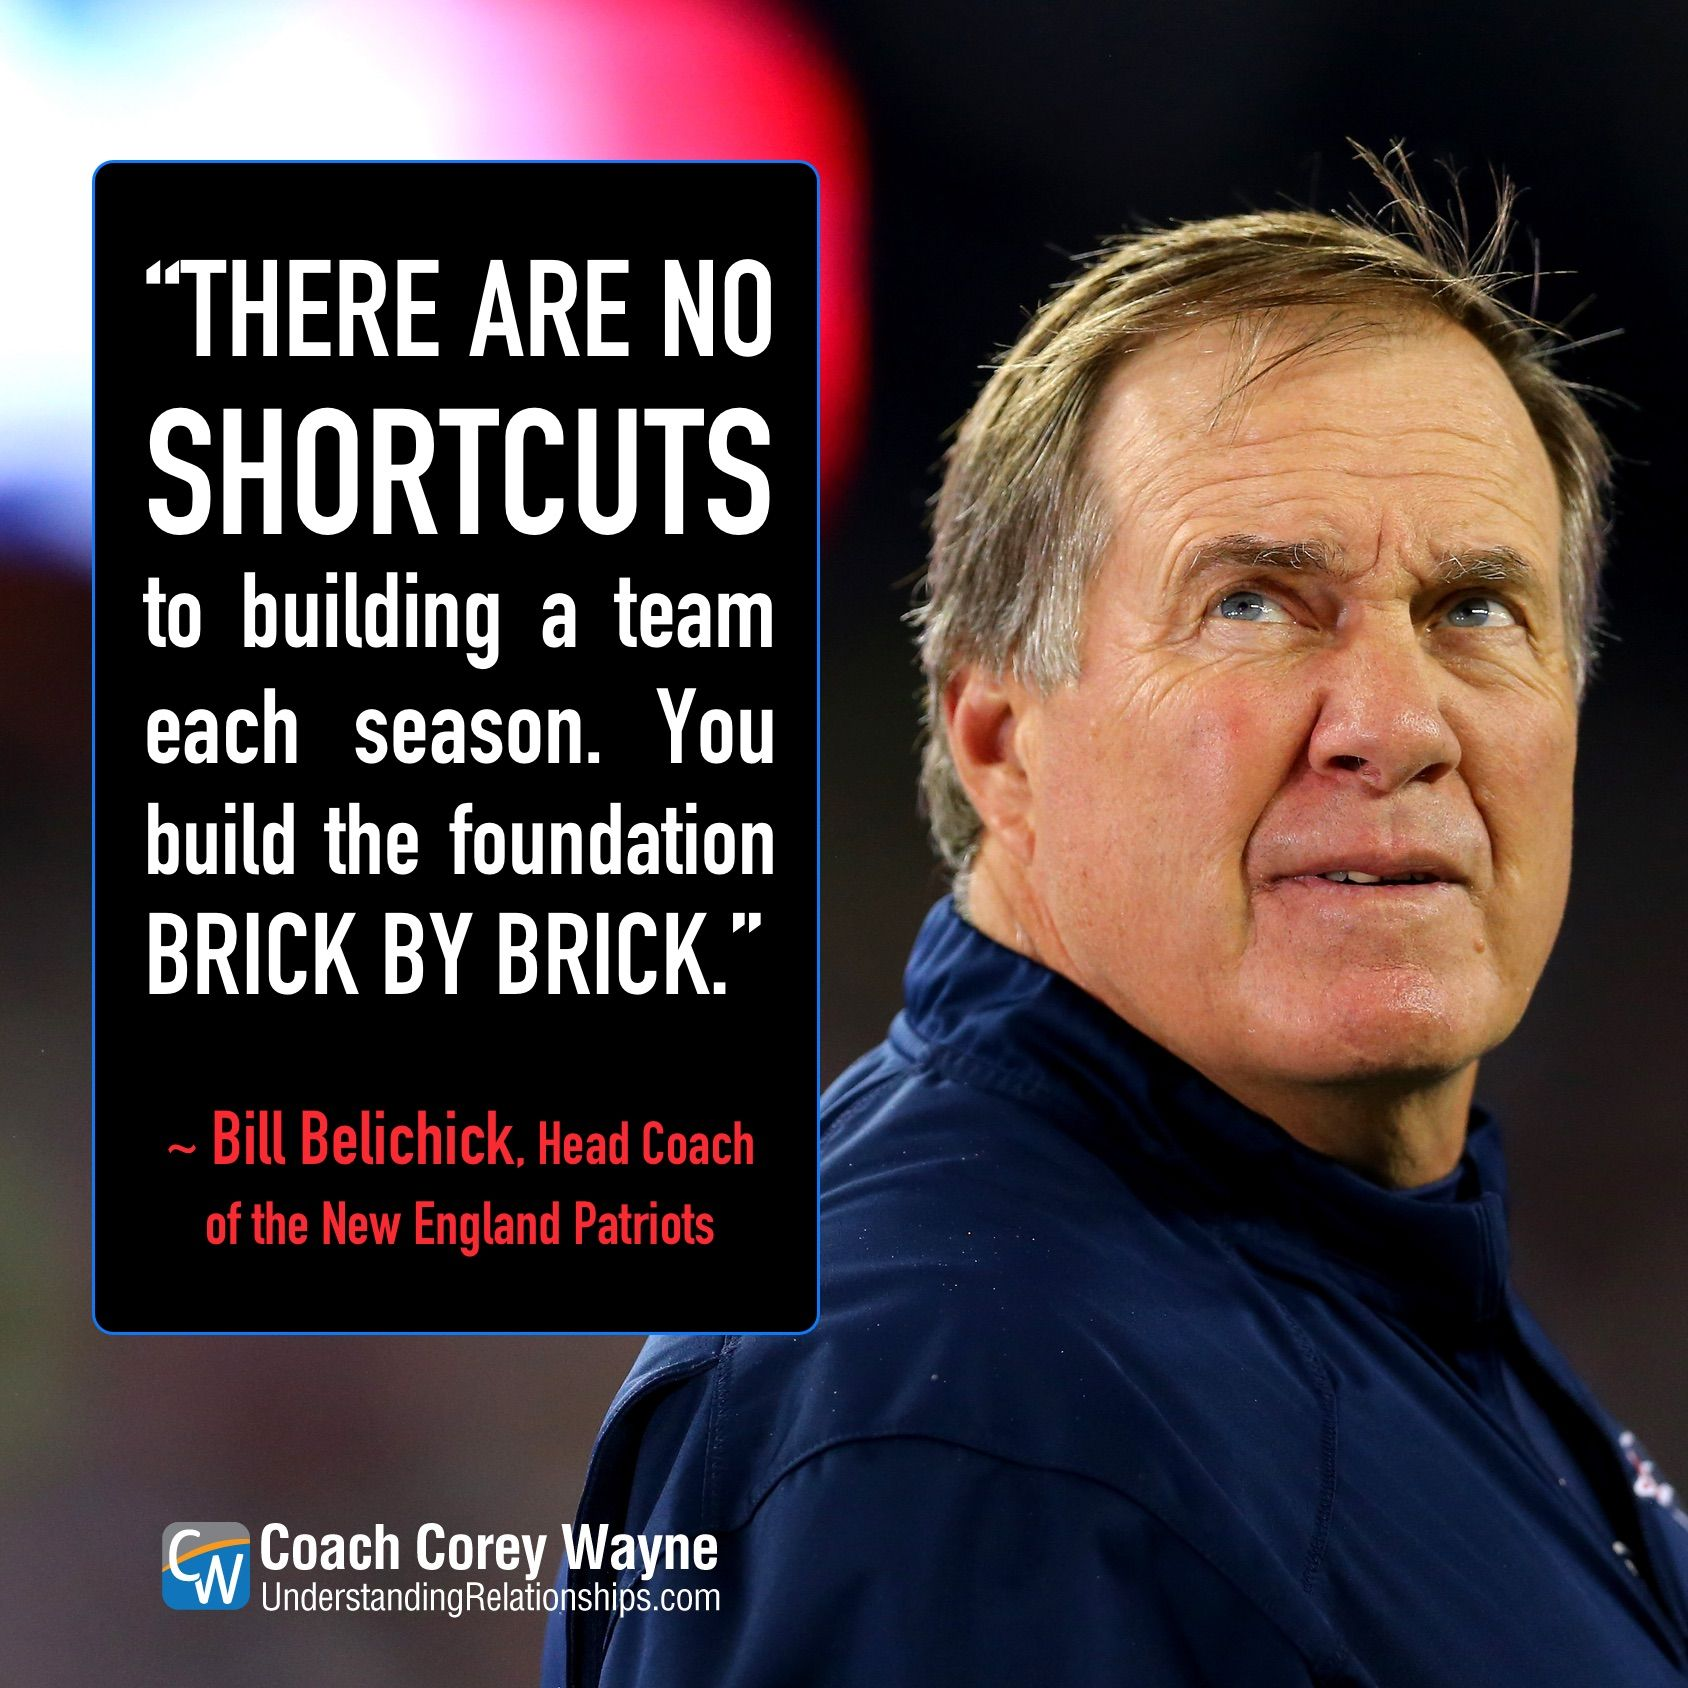 Billbelichick Nfl Football Newenglandpatriots Coaching Teambuilding Success Teamwork Coachcore Bill Belichick Nfl New England Patriots Football Quotes